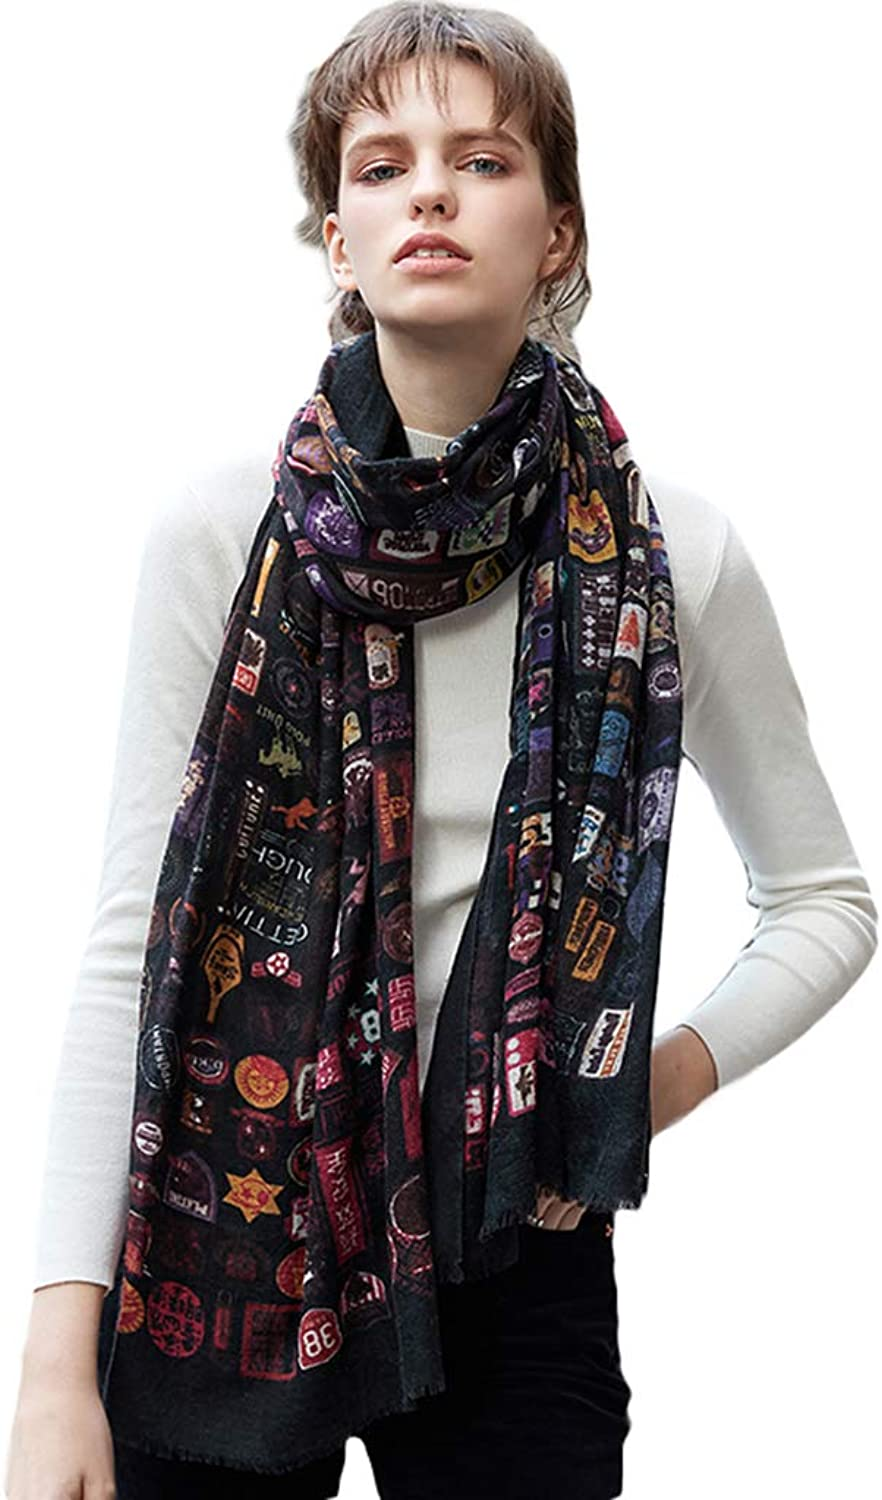 Cold Weather Scarves Women's Scarf Fashion Print Scarf Autumn Winter Thin Scarf Ladies Wrap Shawl Soft Wild Scarf Student Long Cashmere Shawl Wraps (color   Black, Size   200  70cm)